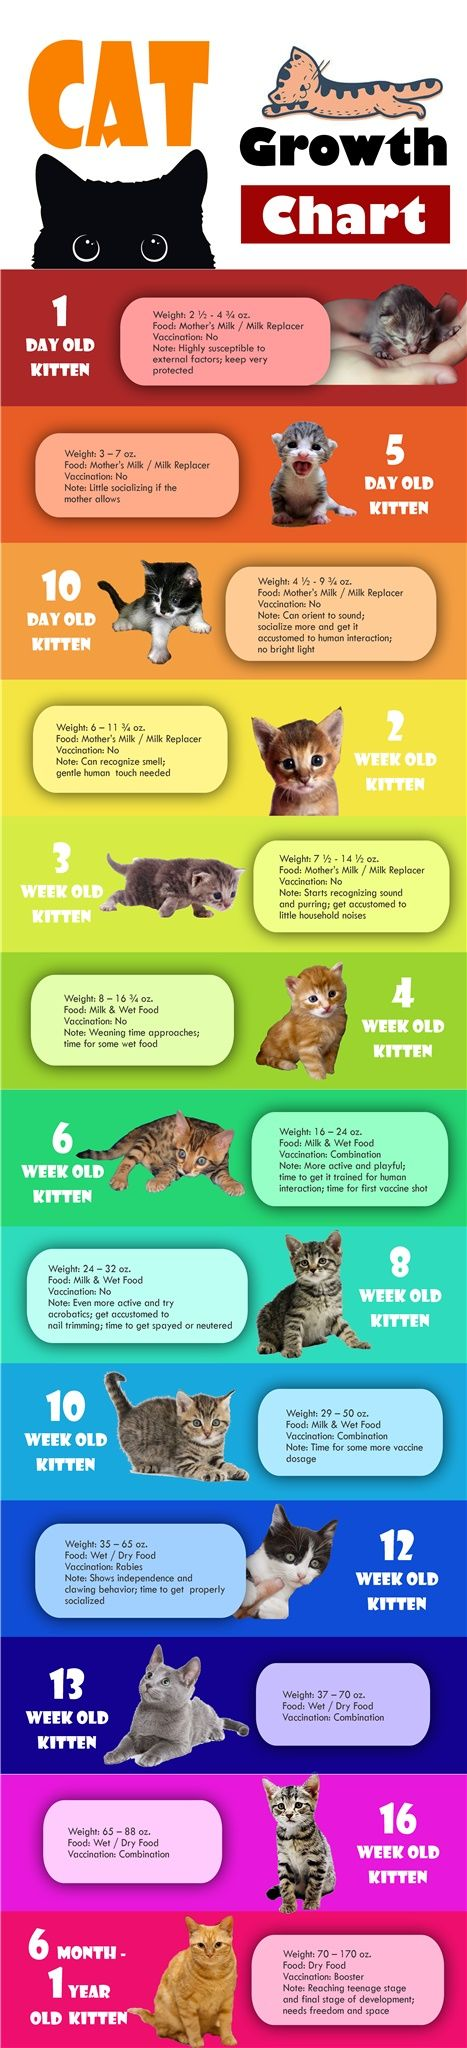 Infographic Kitten Cat Growth Chart By Age Weight And Food Source Http Best1x Com Kitten Cat Growth Chart Cat Infographic Kitten Care Kitten